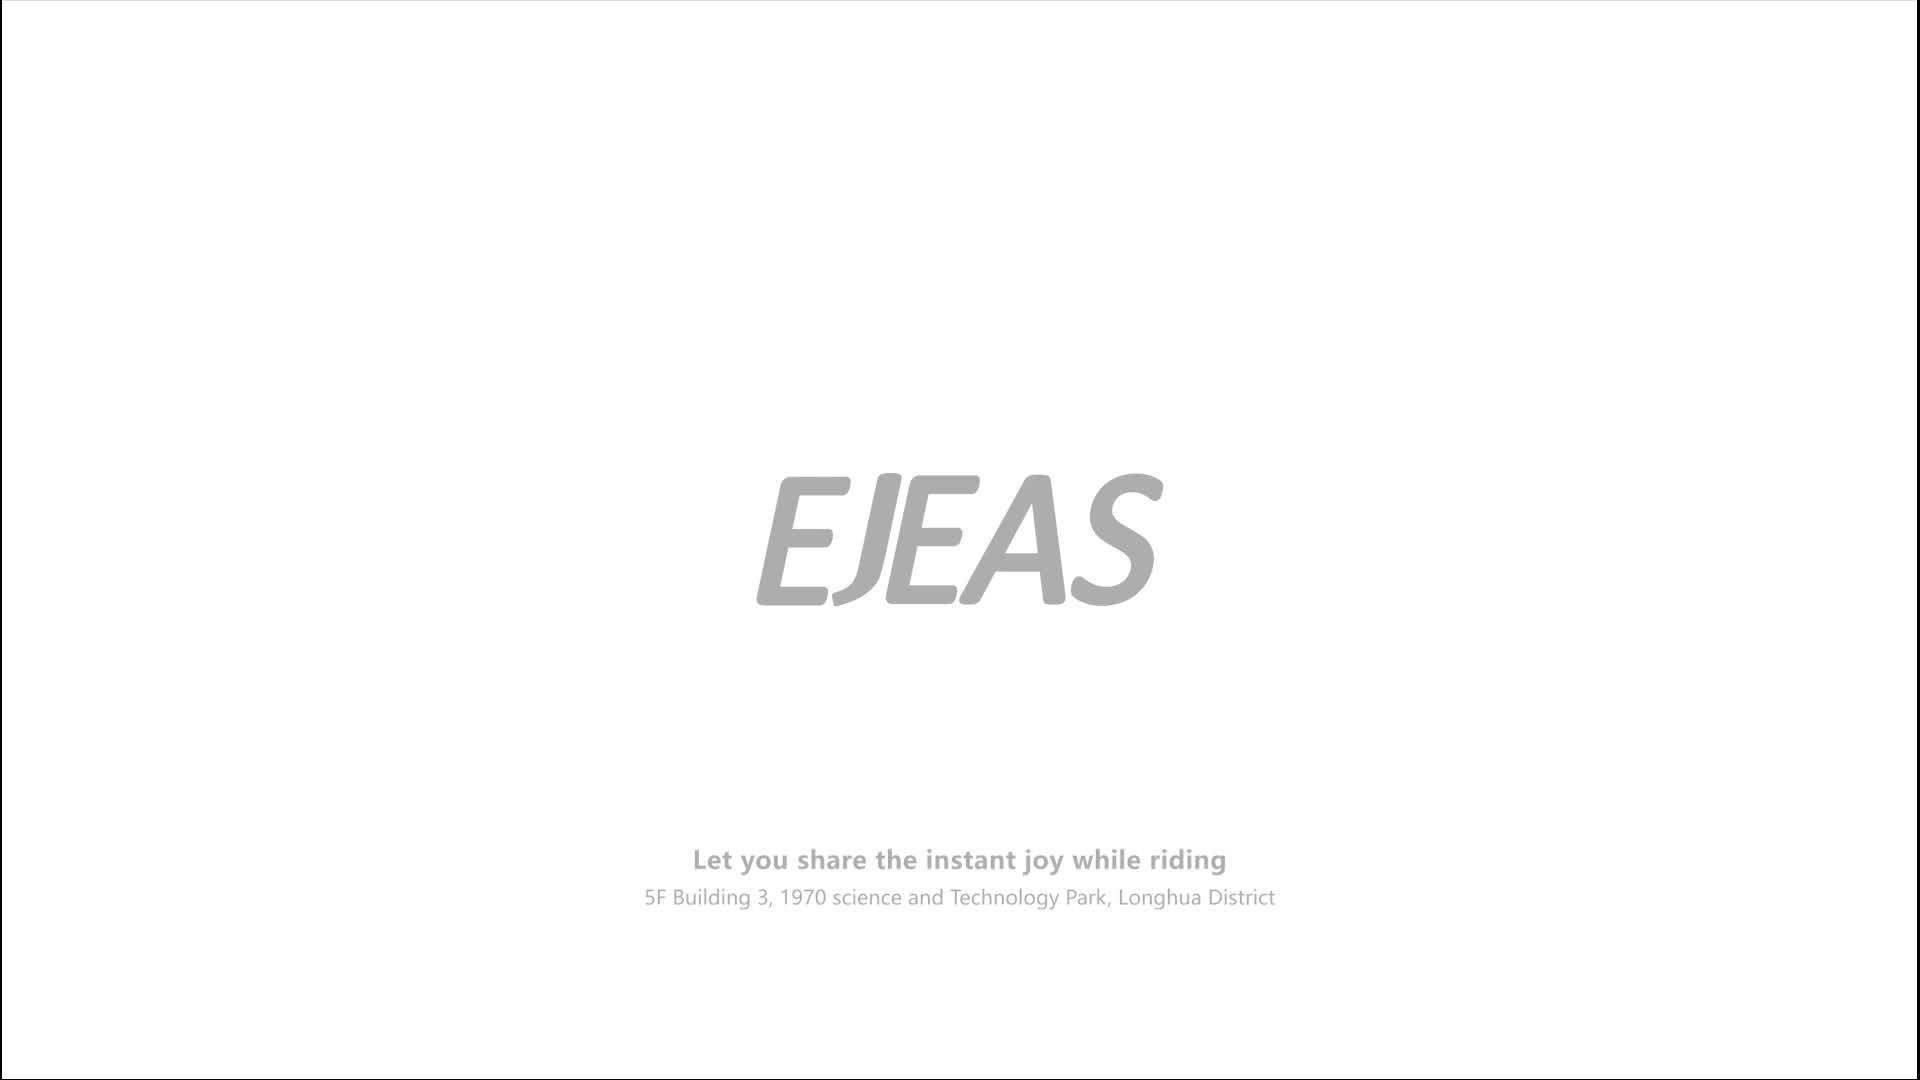 Ejeas V6 pro 6 riders headphones moto accessories waterproof intercom motorcycle helmet bluetooth